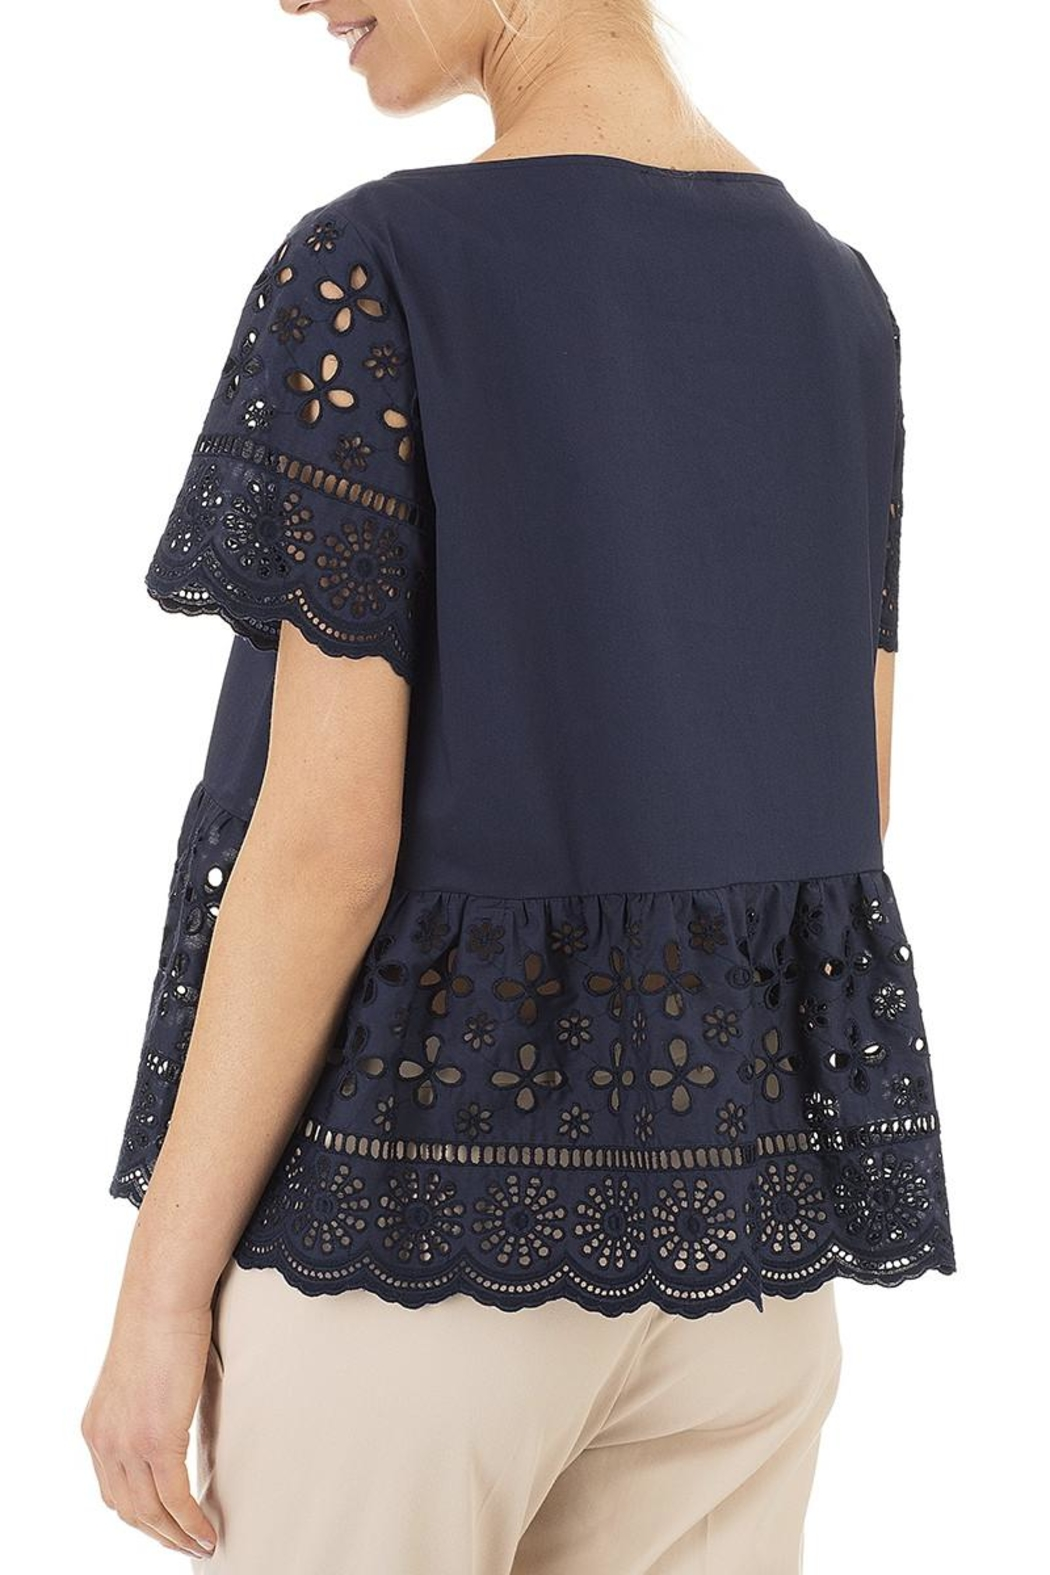 Seventy Cotton Navy Top - Front Full Image